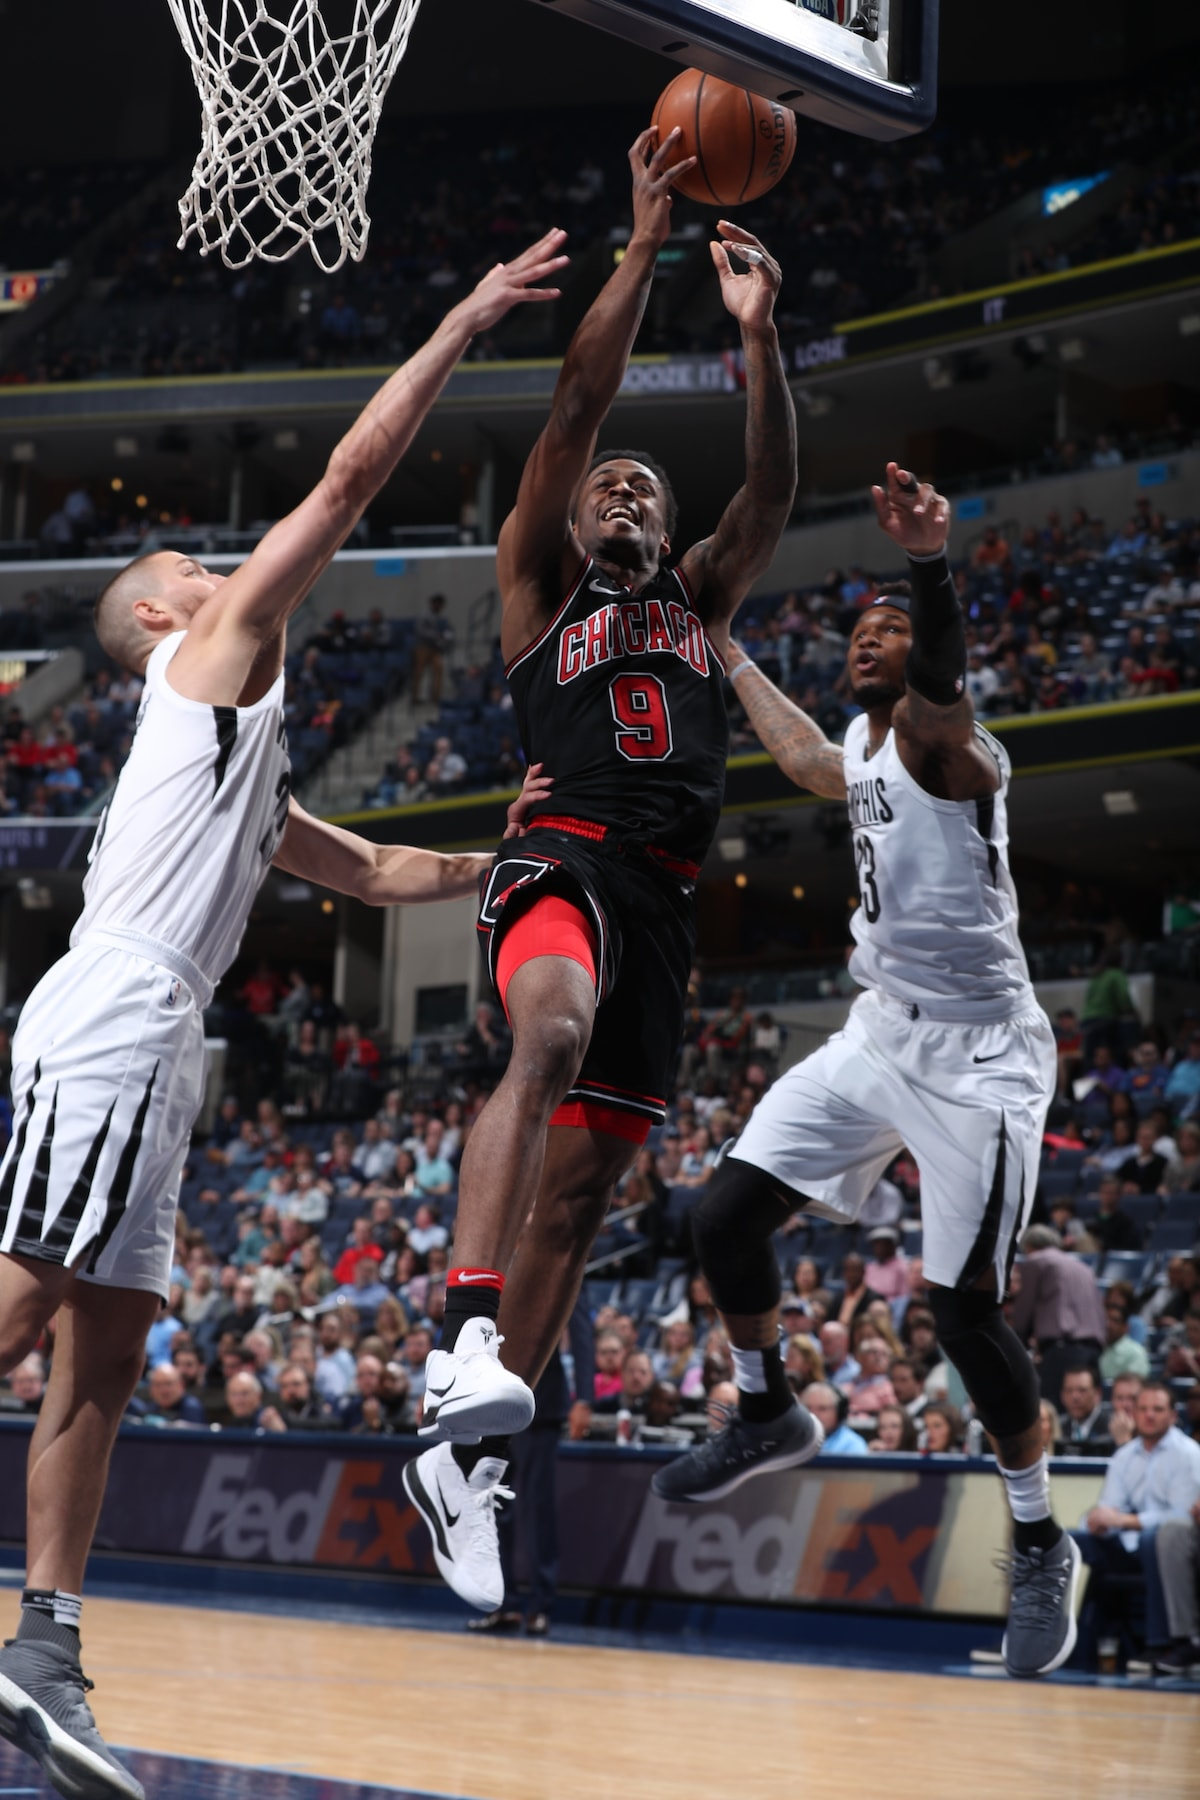 Antonio Blakeney #9 of the Chicago Bulls drives to the basket during the game against the Memphis Grizzlies